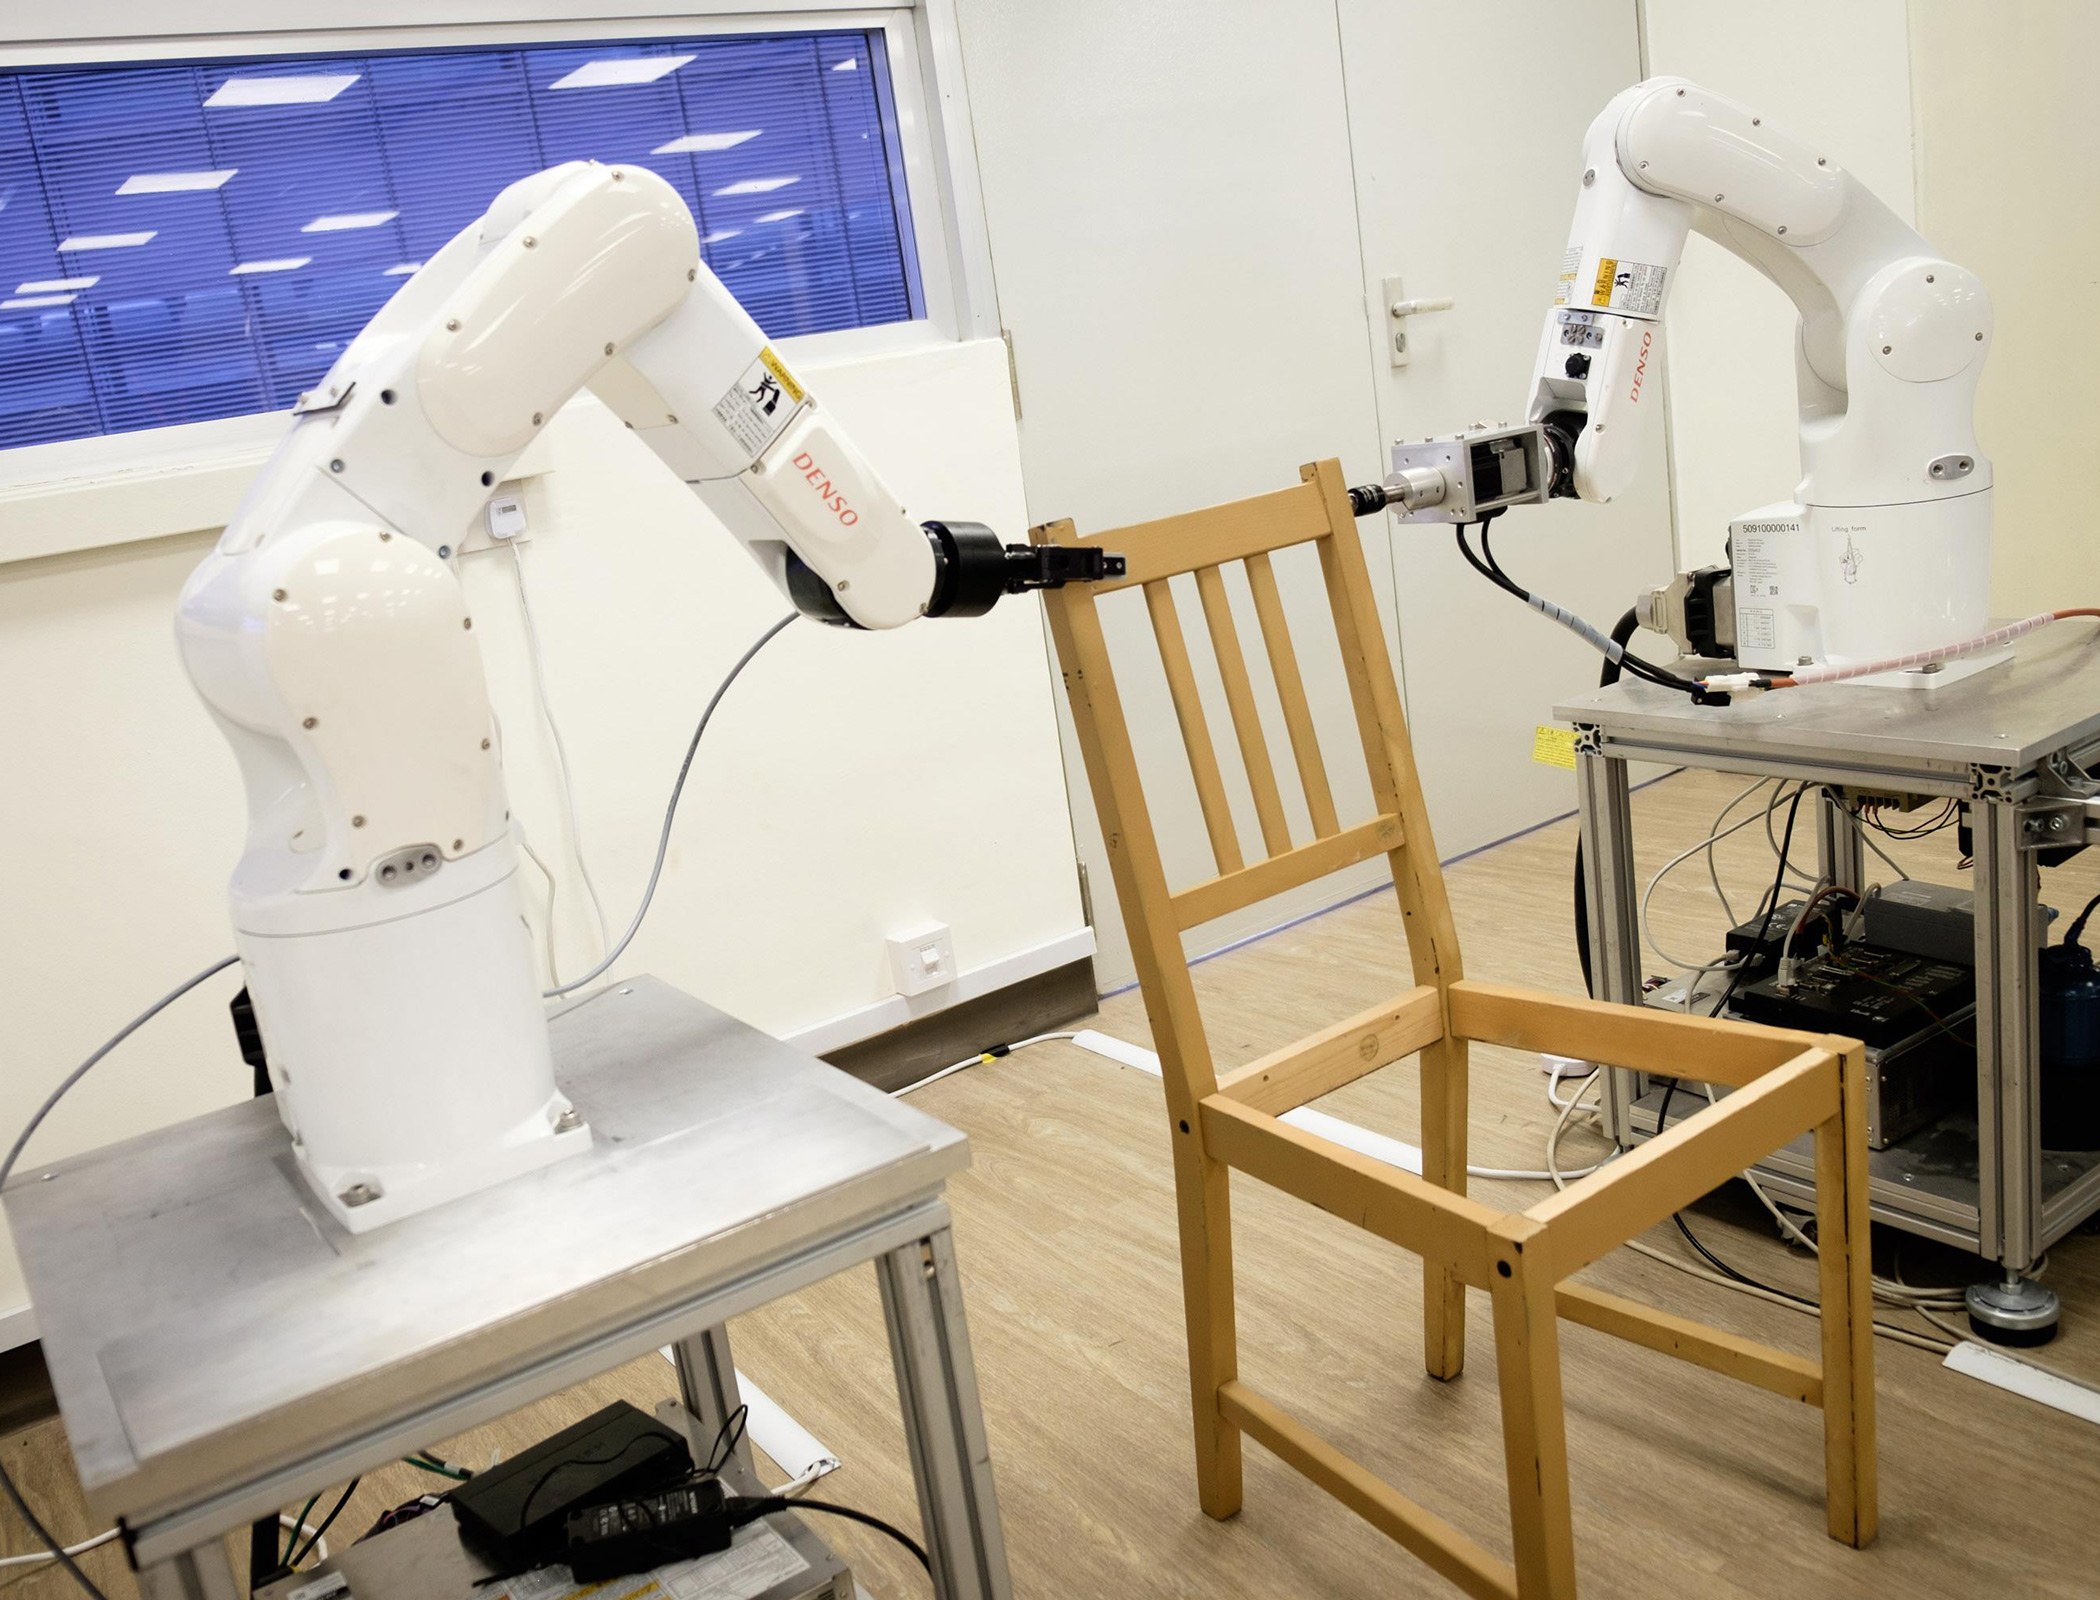 IKEA Furniture Self Assembly Tackled By Two Armed Robot